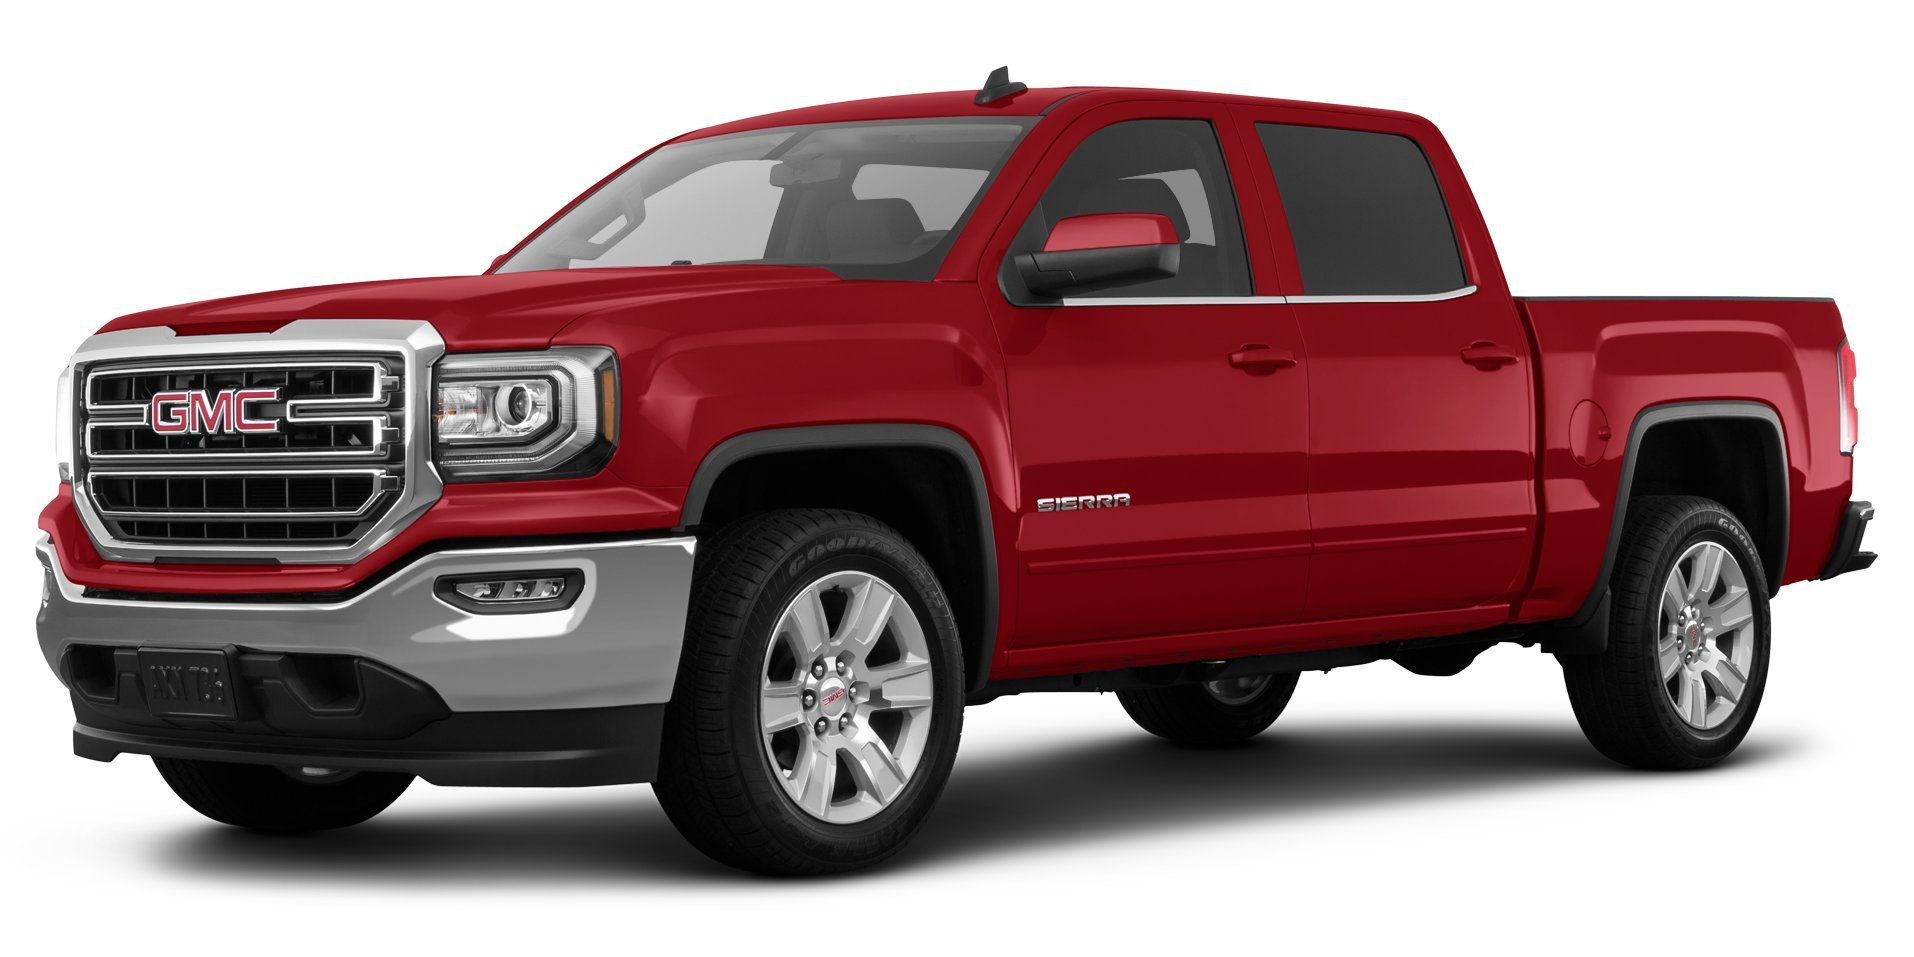 2016 gmc sierra 1500 reviews images and specs vehicles. Black Bedroom Furniture Sets. Home Design Ideas